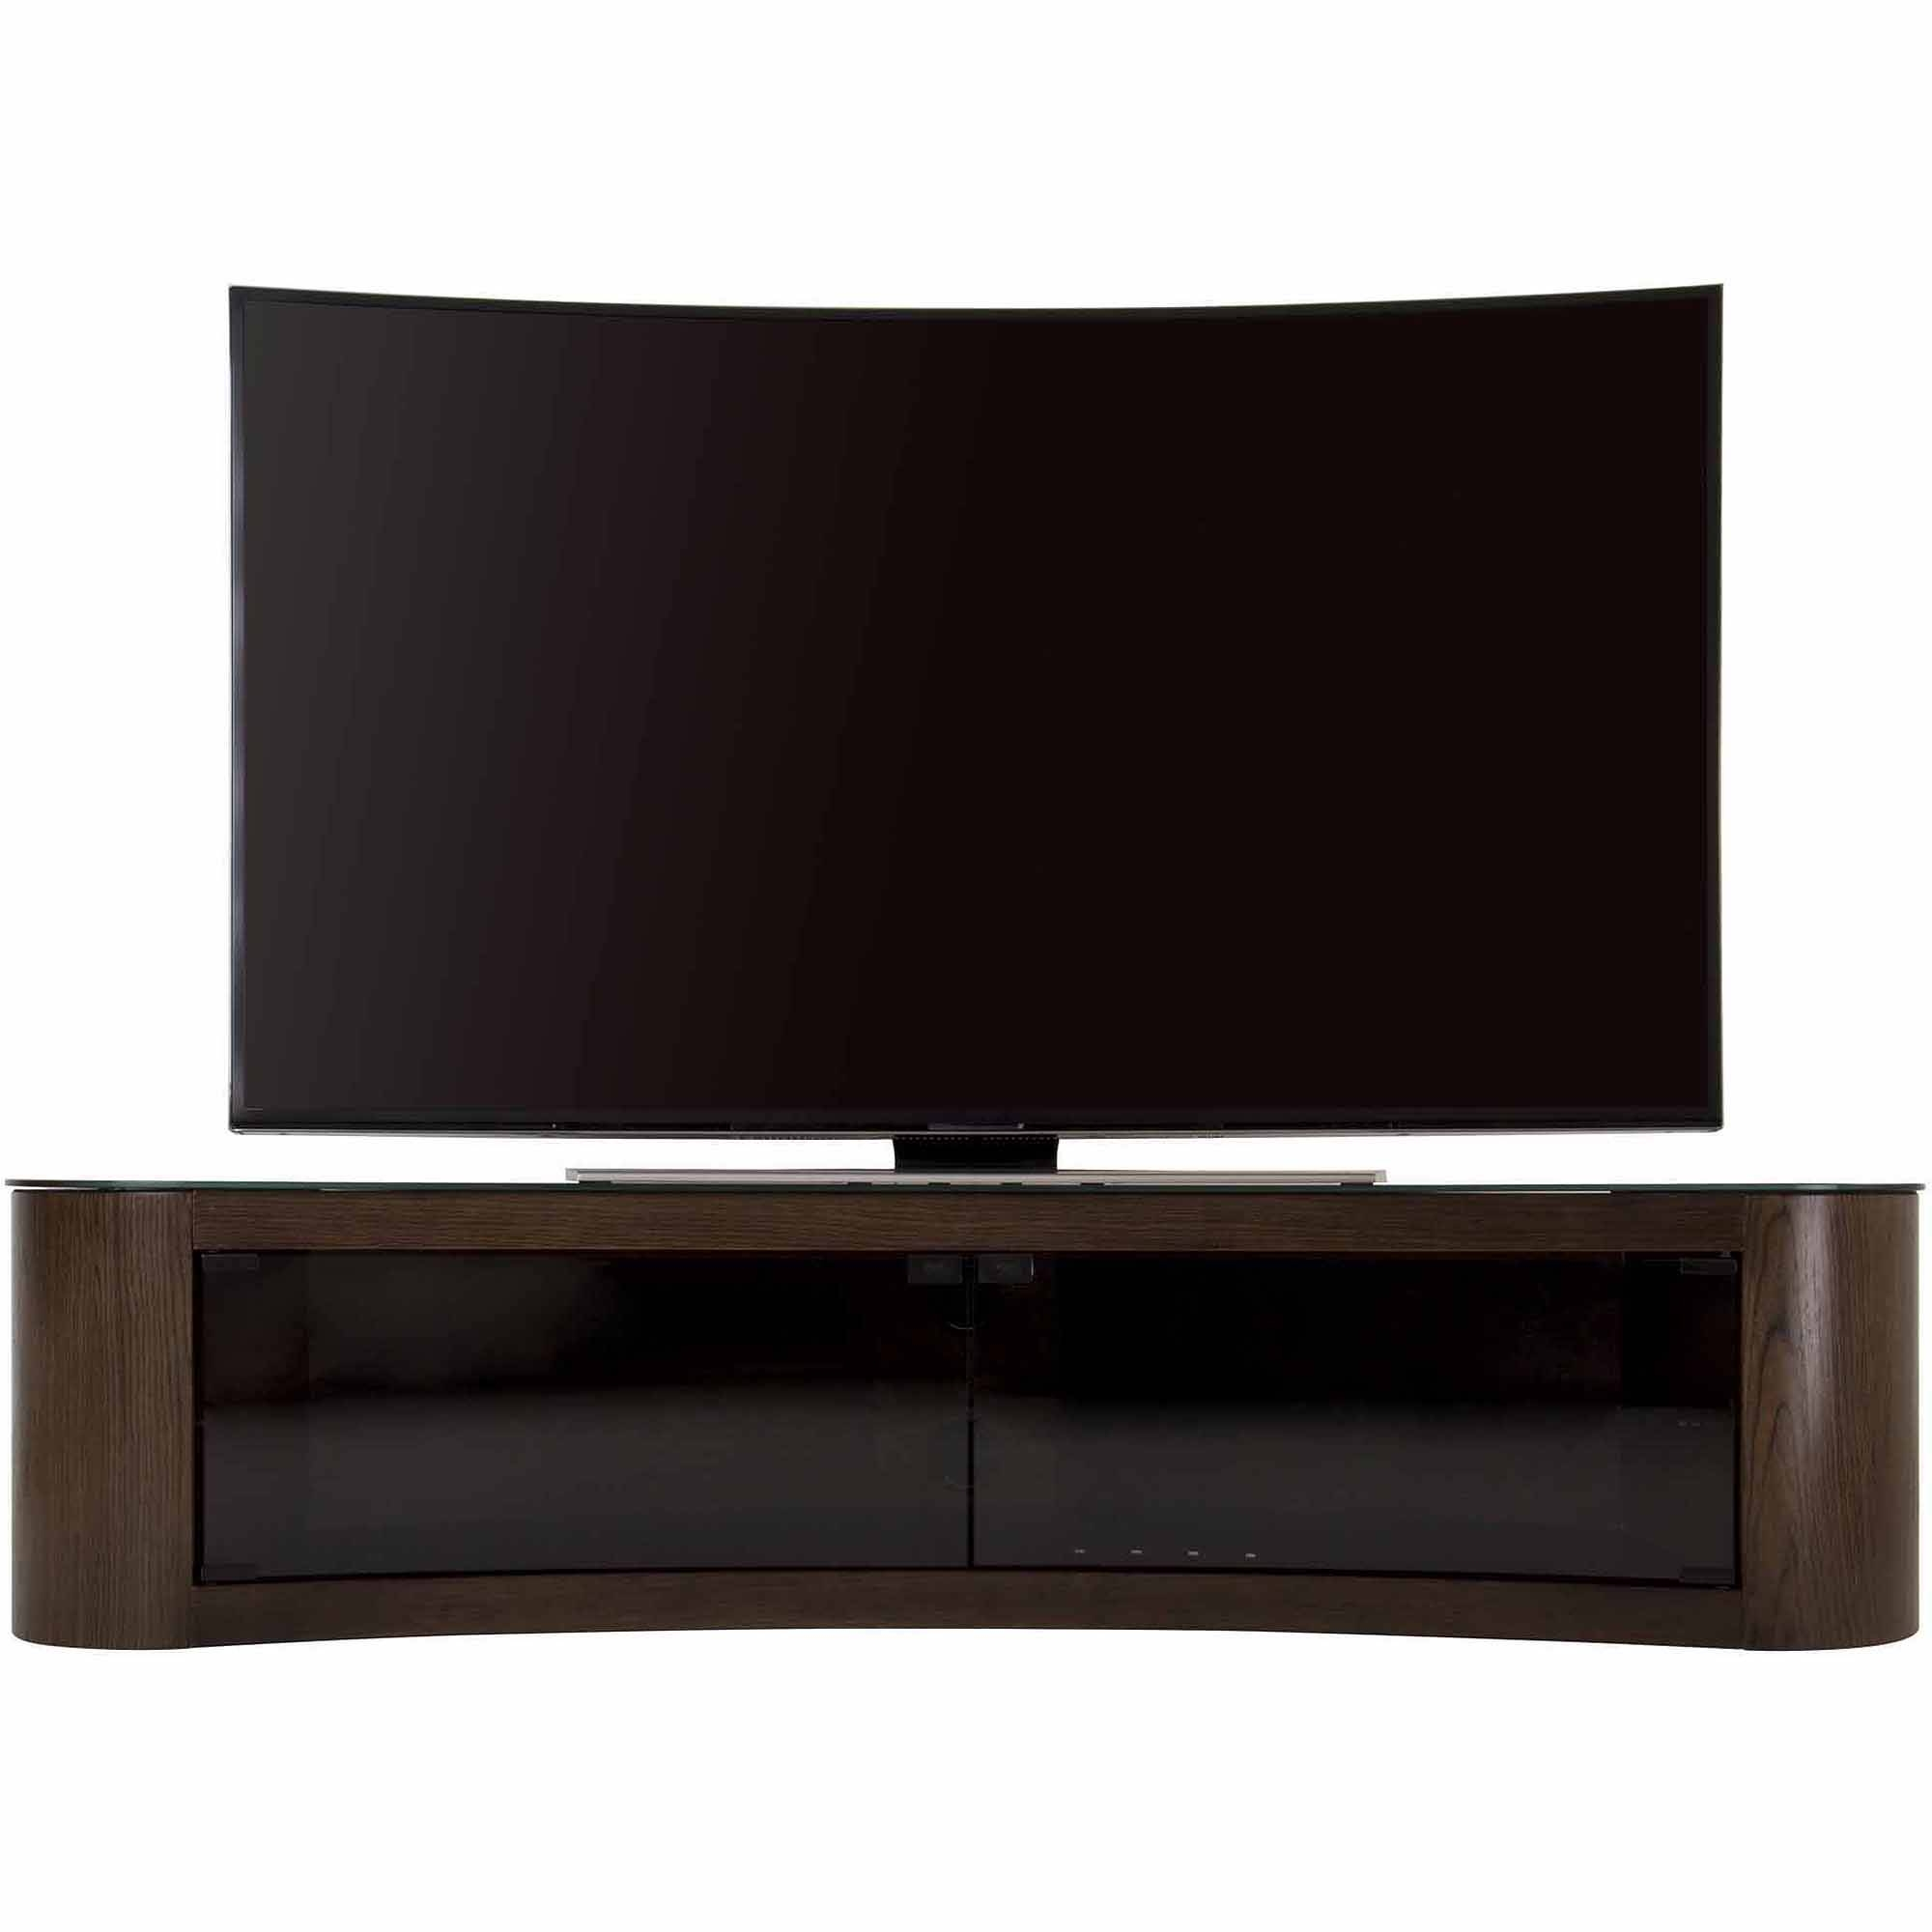 """Avf Bay Curved Tv Stand For Tvs Up To 70"""" – Walmart With Regard To Tv Stands For 43 Inch Tv (View 6 of 15)"""